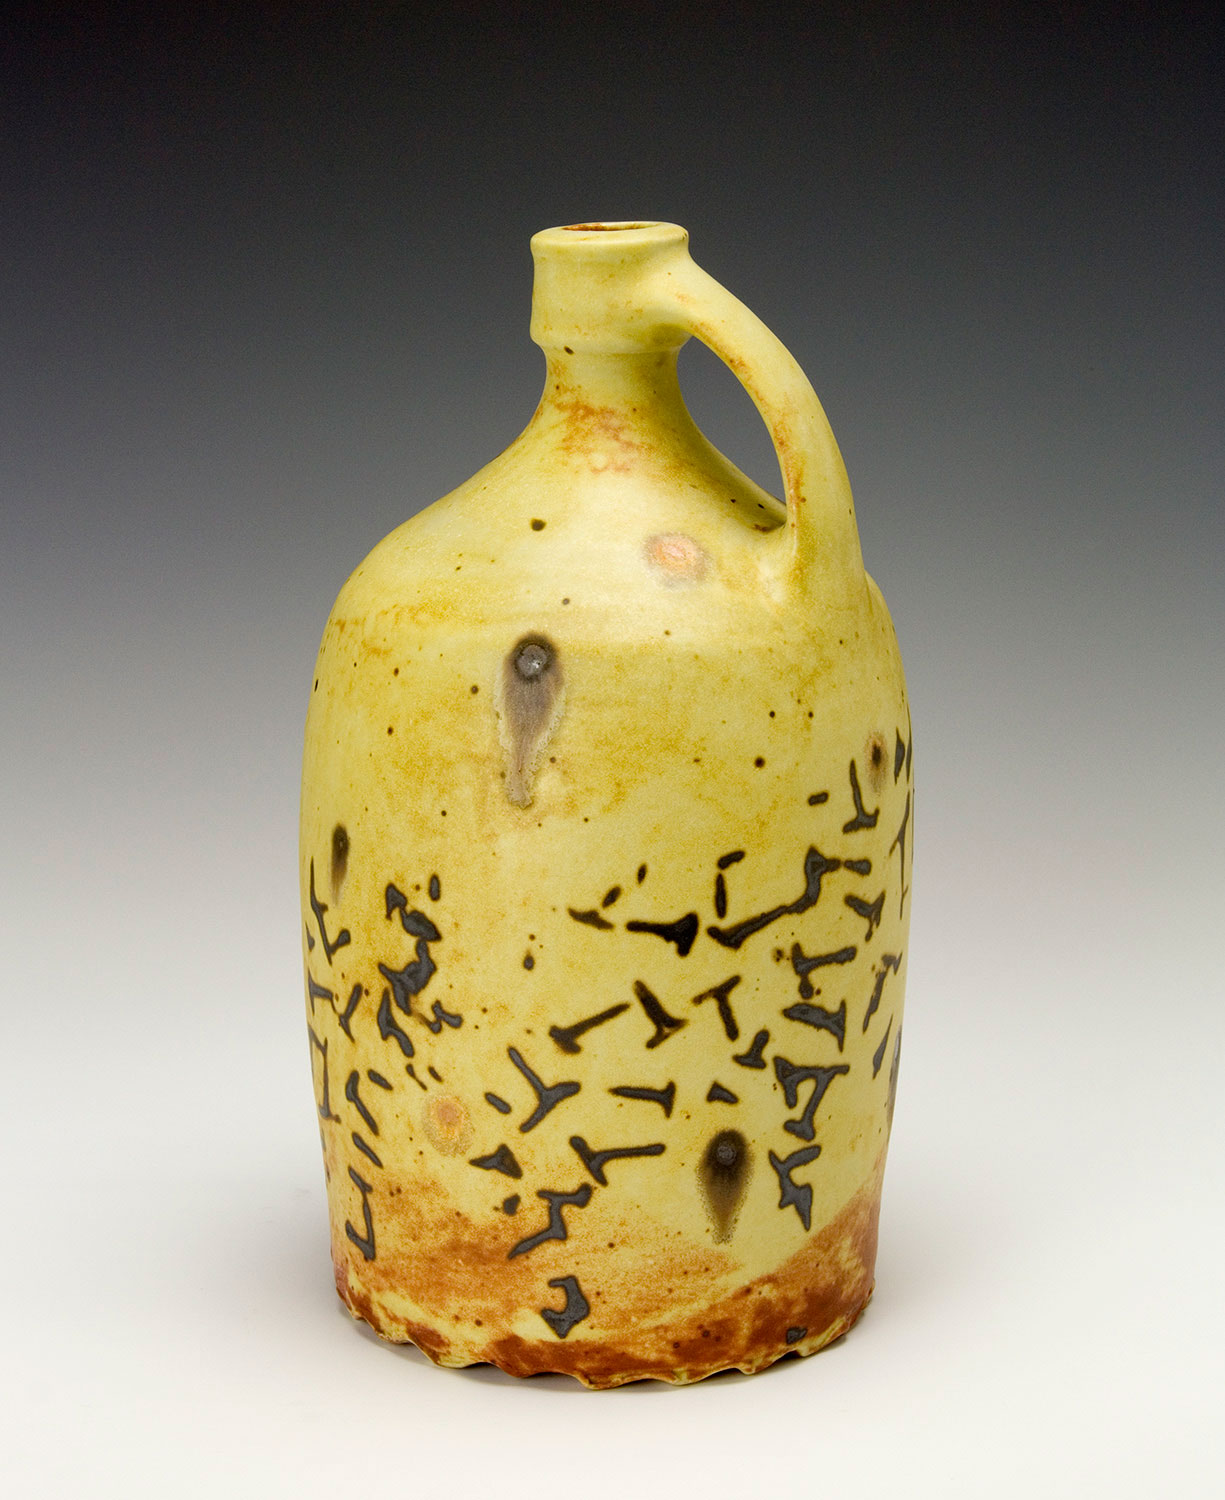 Pottery-Jug-Wild-Clay-Bruce-Gholson-Seagrove-North-Carolina.jpg